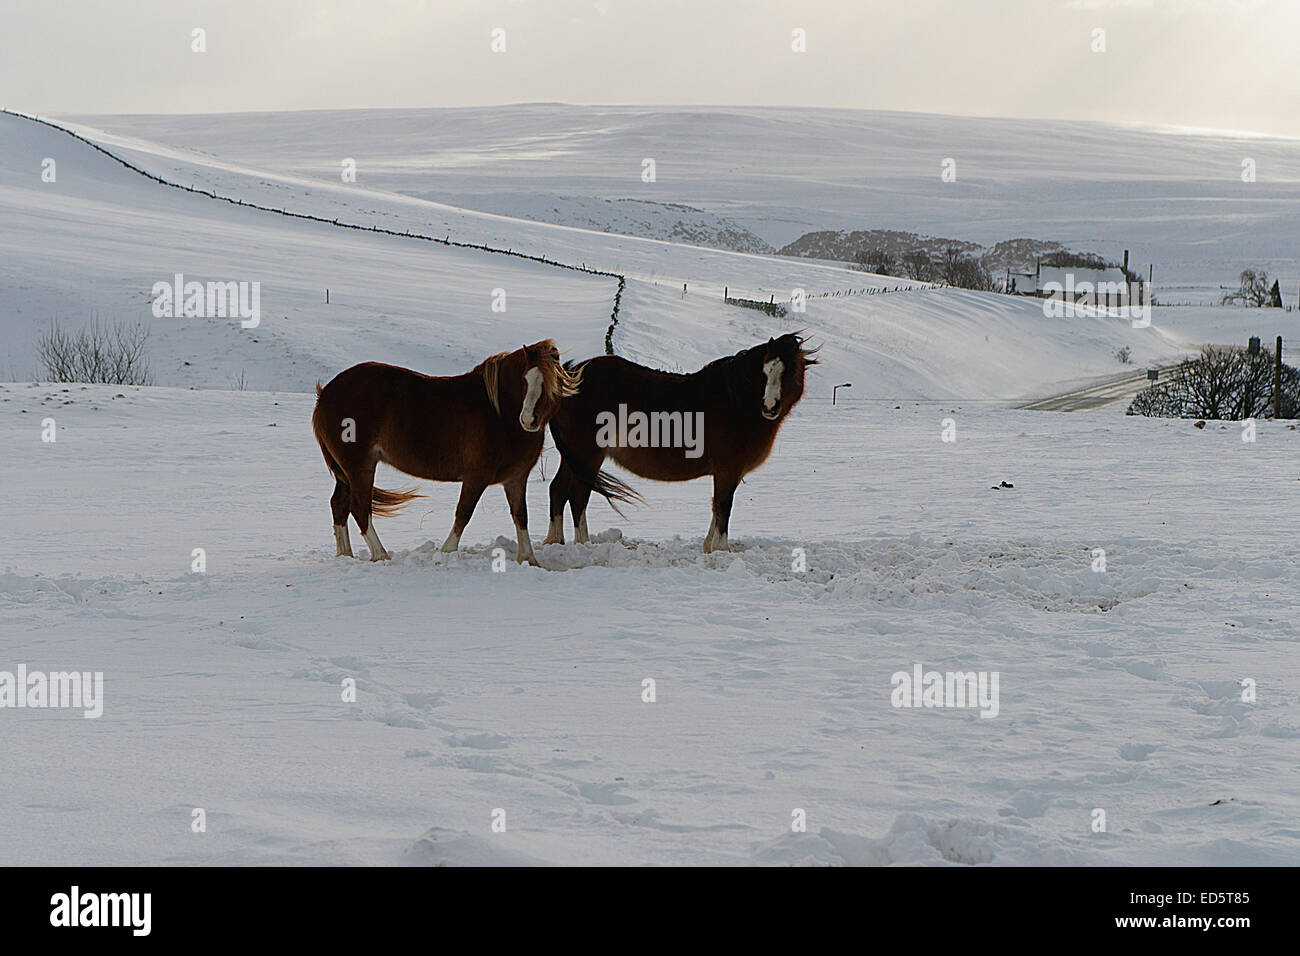 A real winters scene in Upper Teesdale with some horses braving the sub zero temperatures as seen at Langdon Bridge Stock Photo